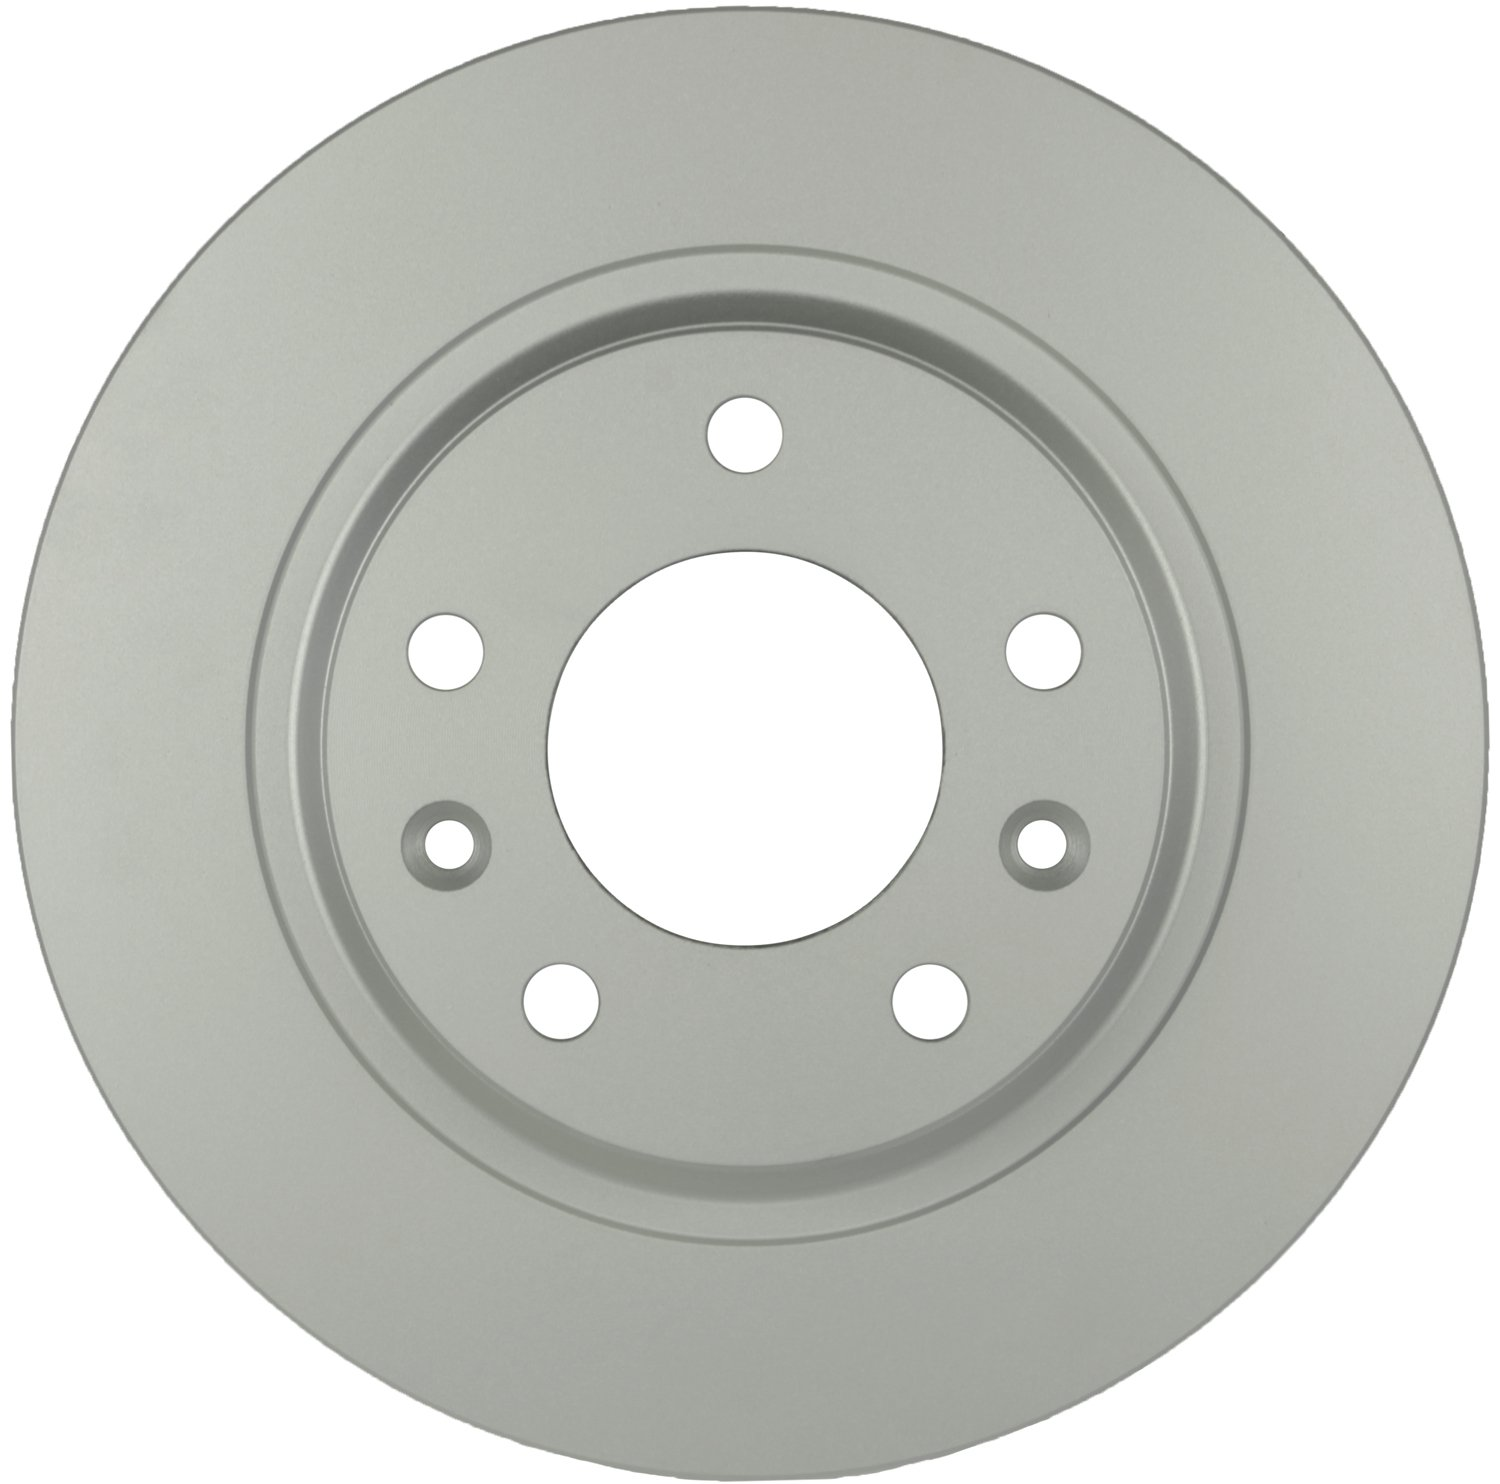 Bosch 20011481 QuietCast Premium Disc Brake Rotor